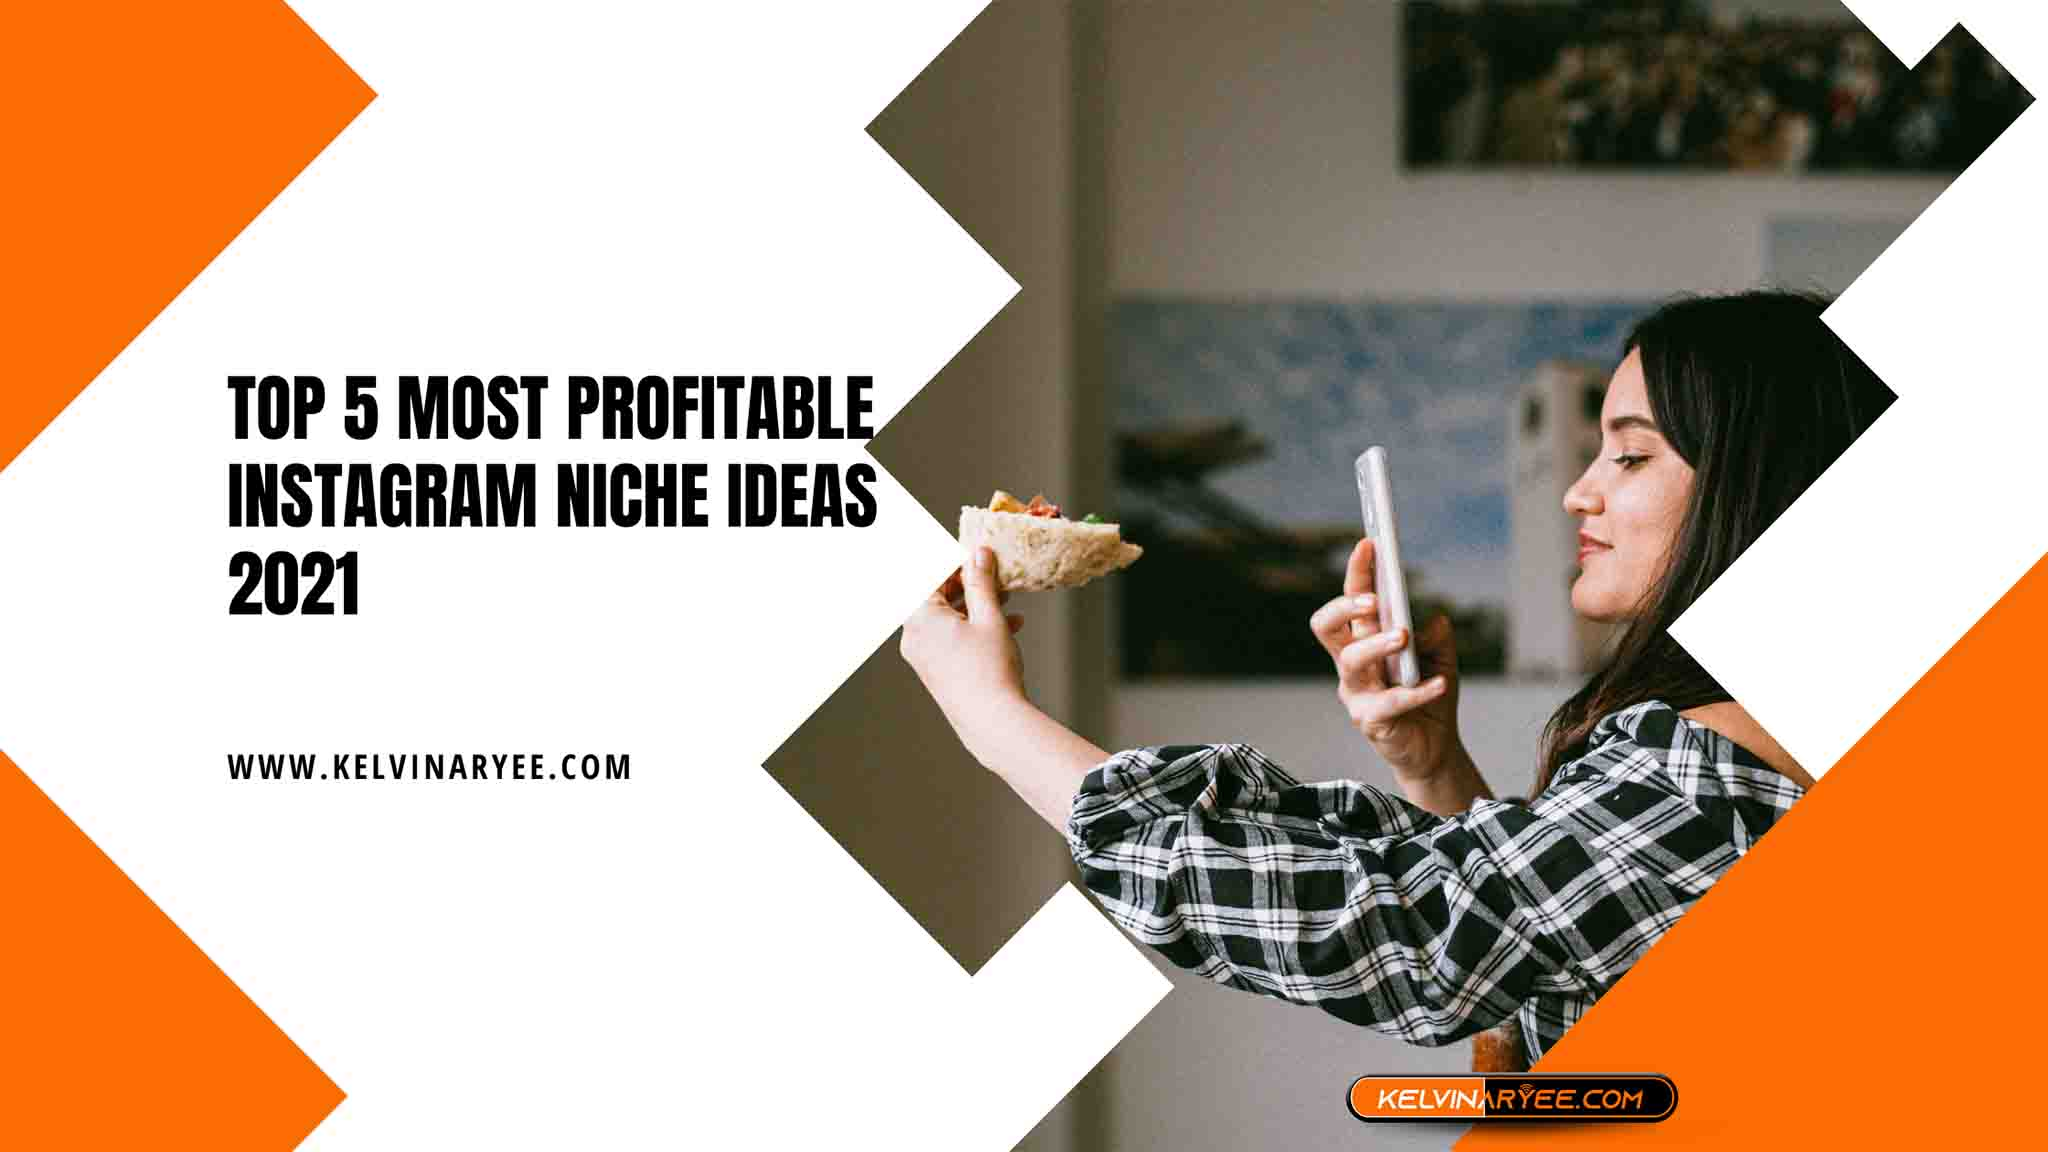 You are currently viewing Top 5 Most Profitable Instagram Niche Ideas 2021